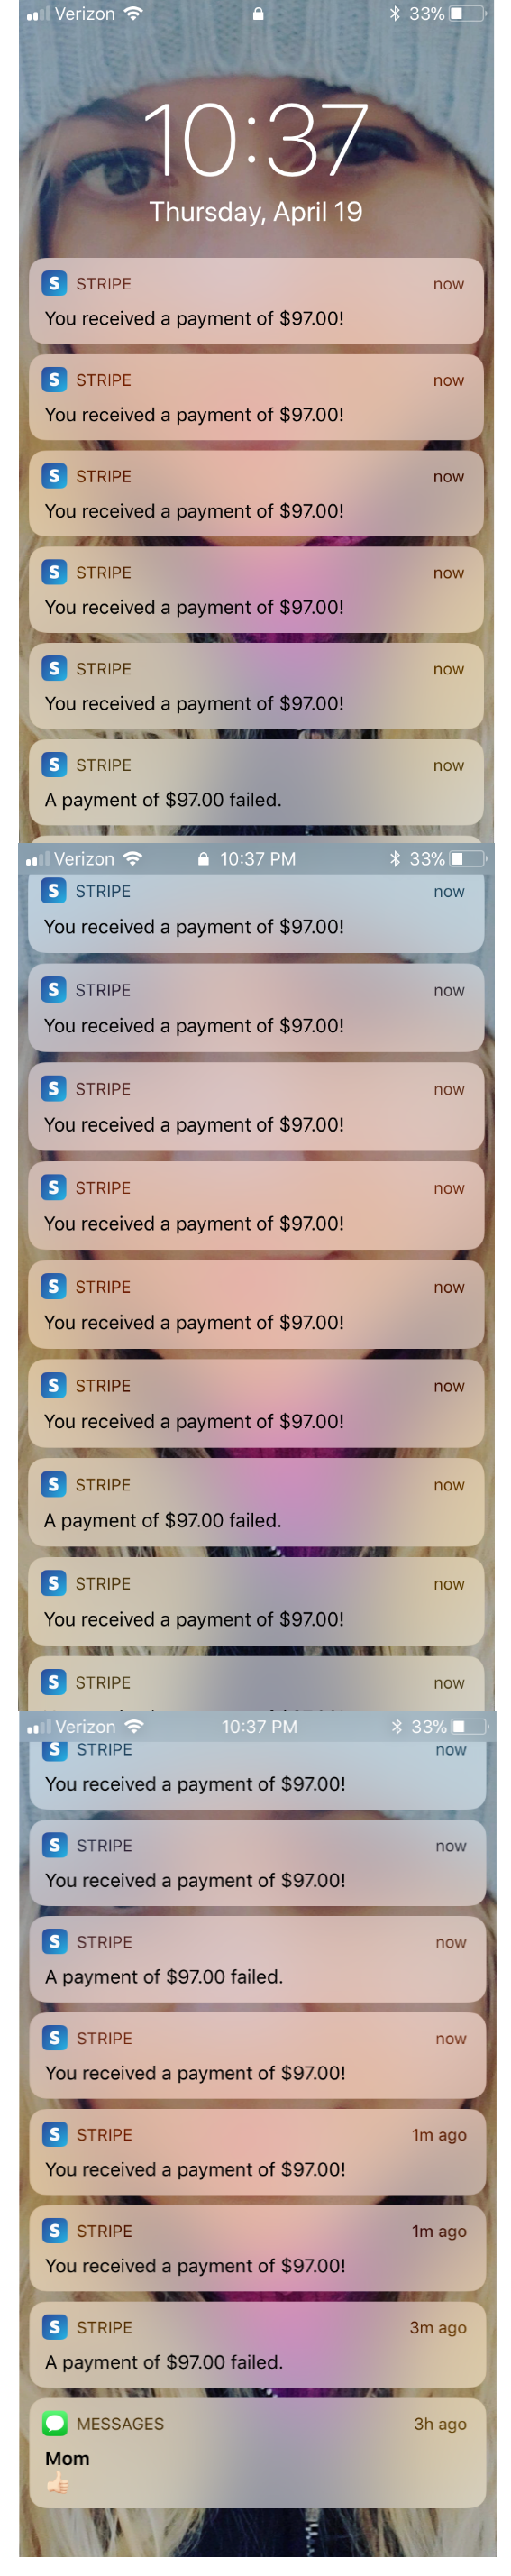 stripe-payments-1